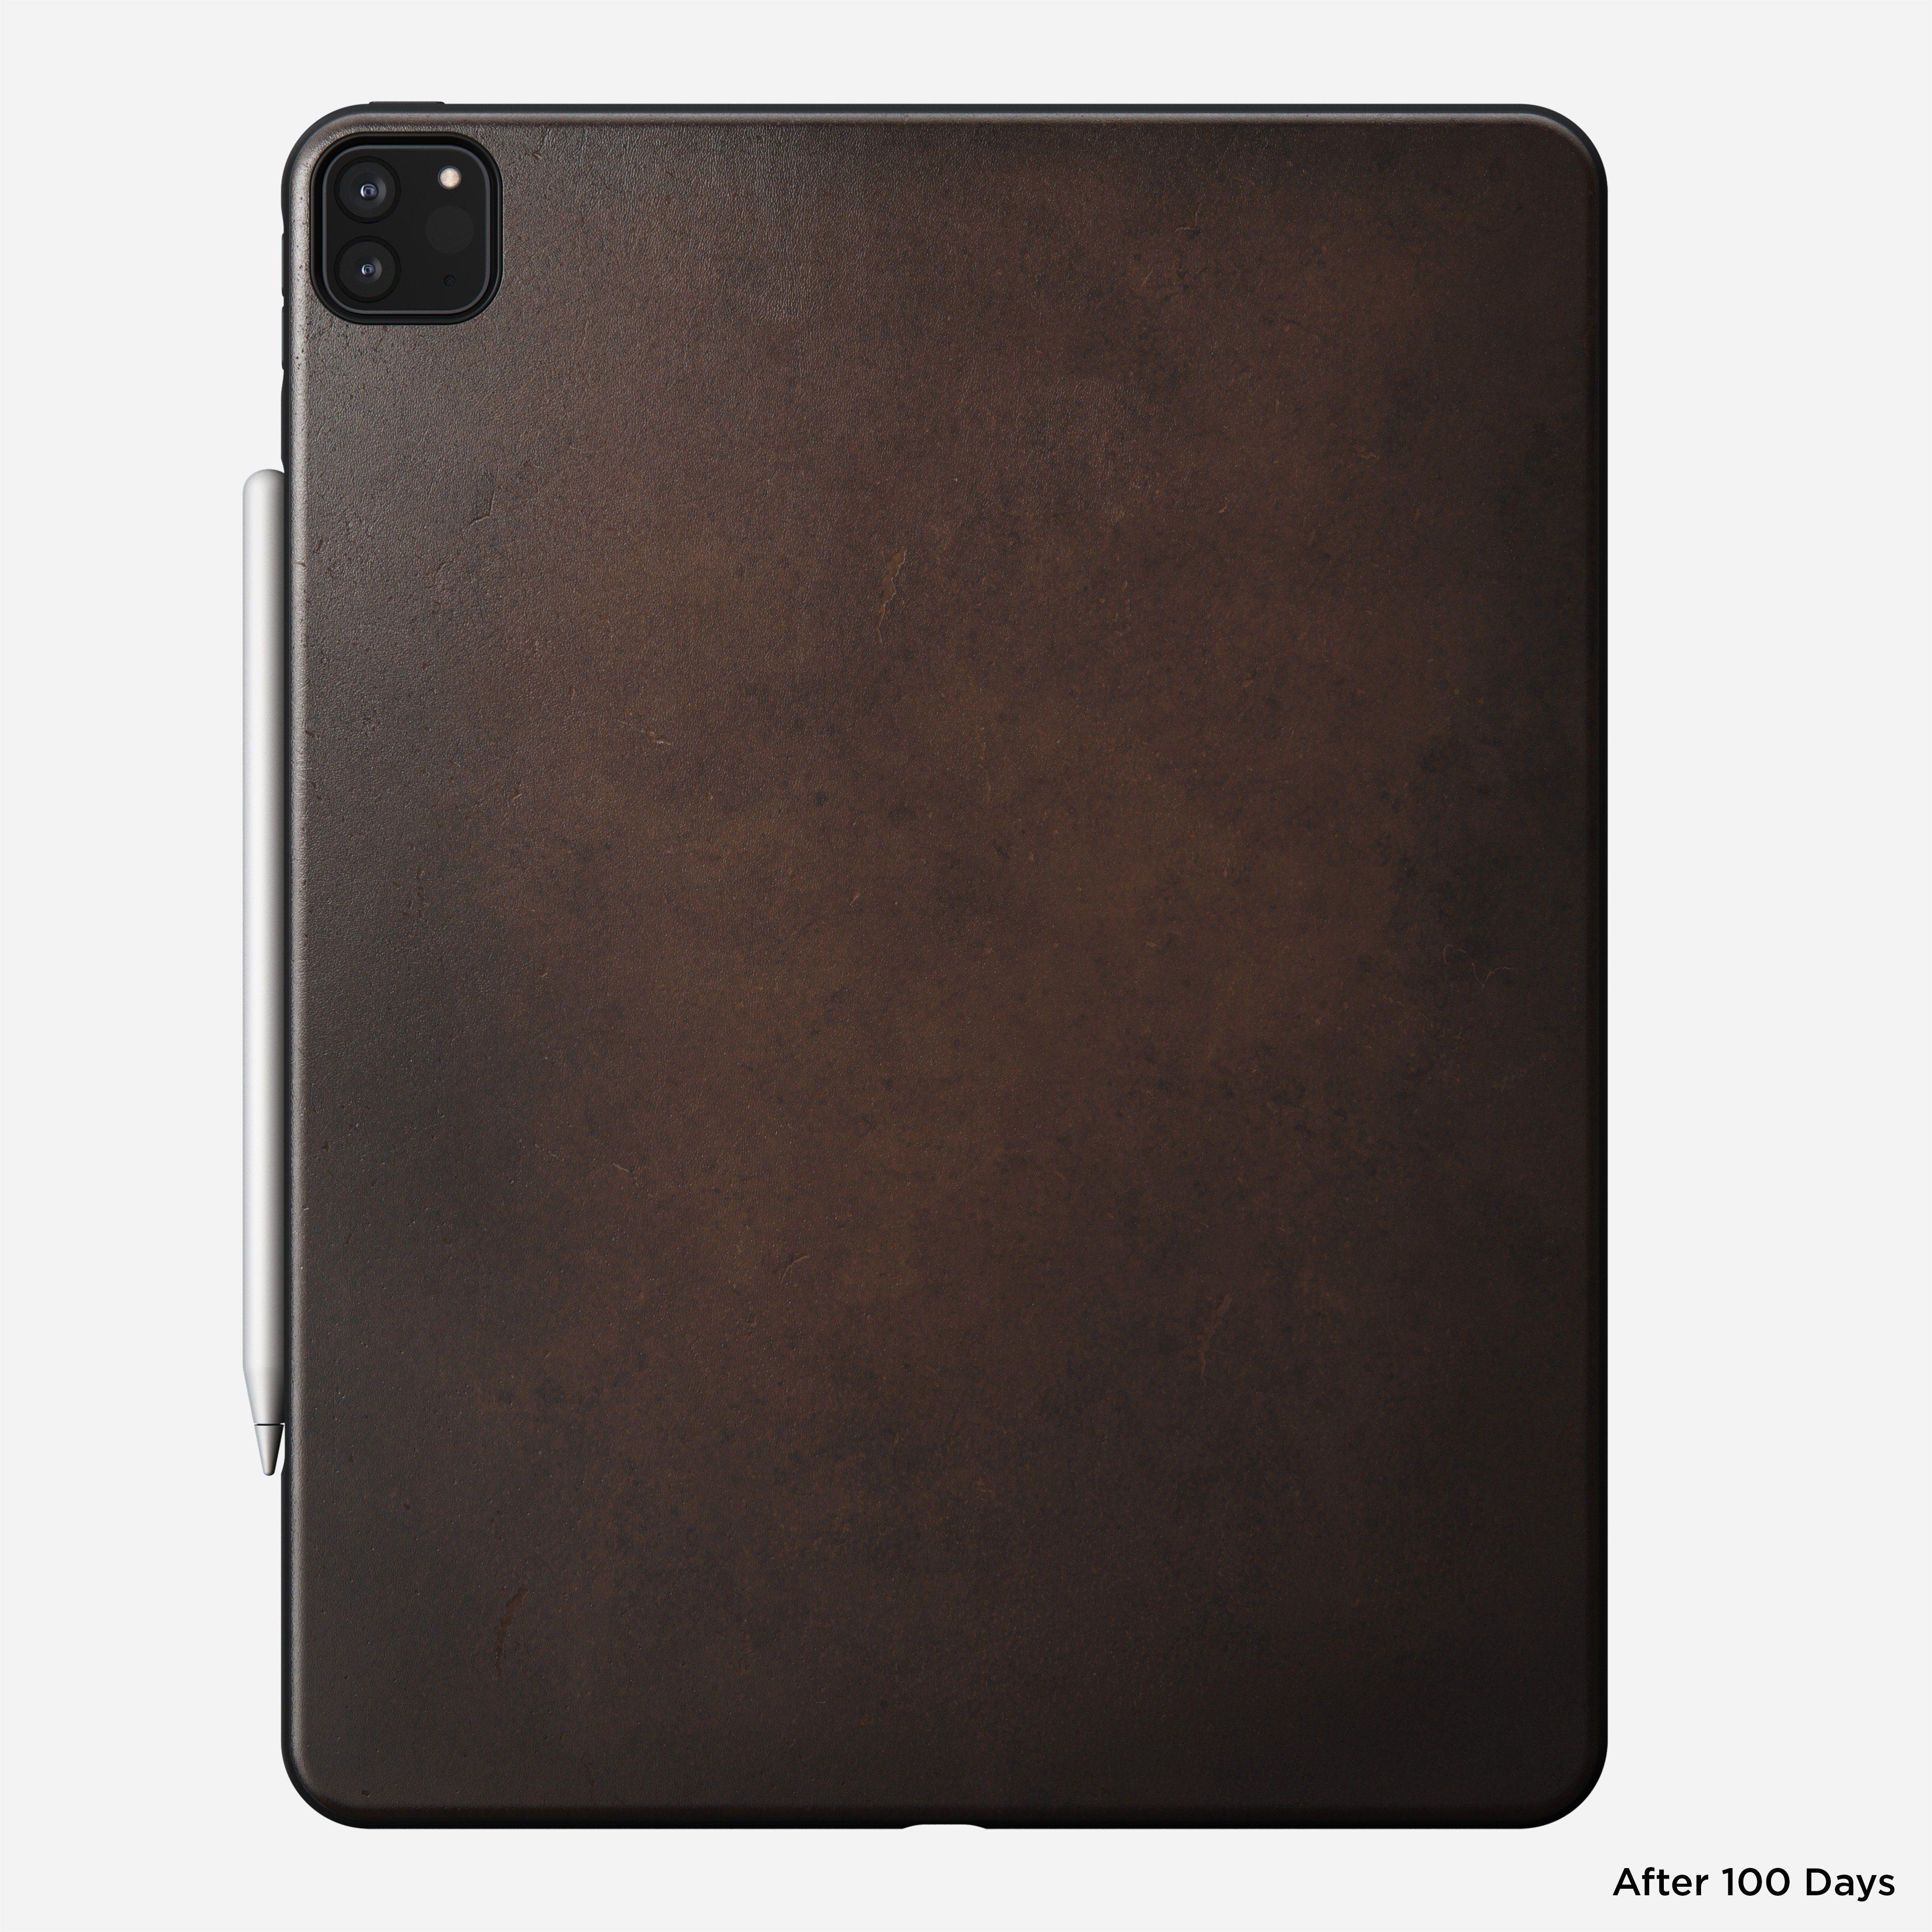 Rugged case horween leather rustic brown ipad pro 12 9 inch 4th generation